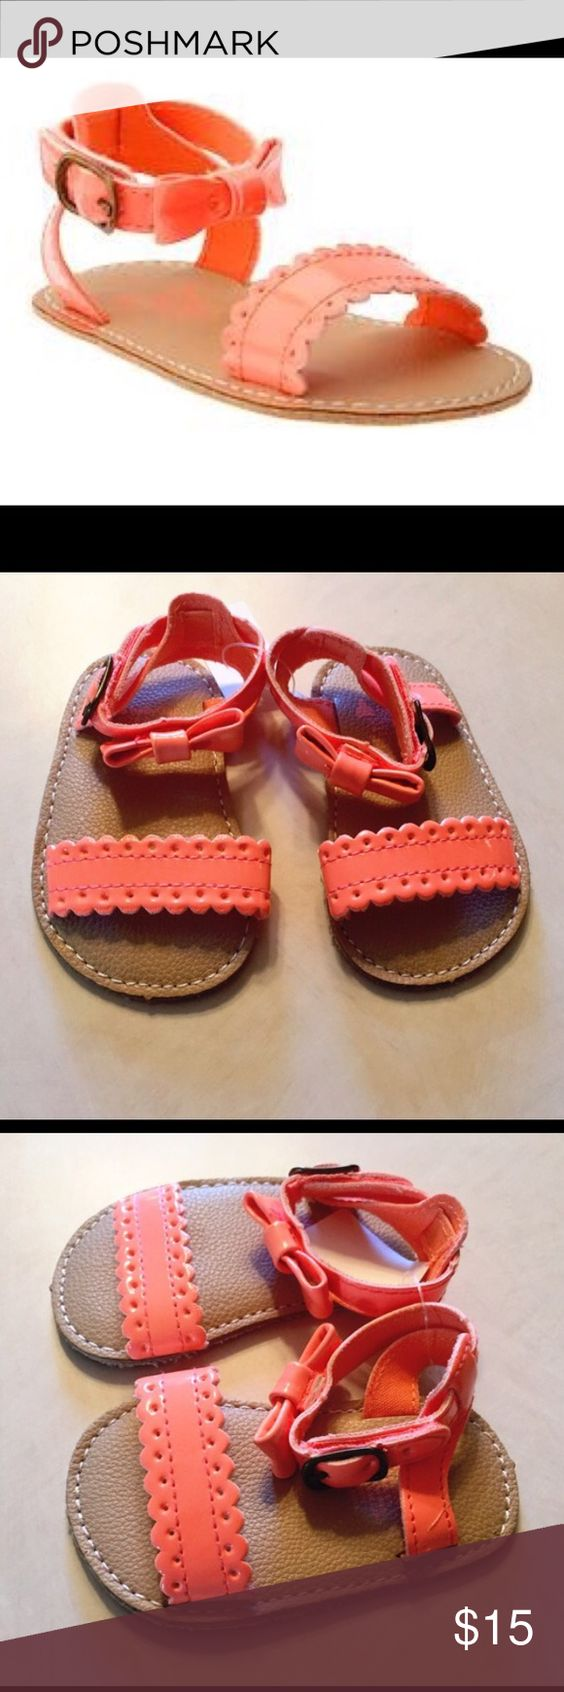 Baby Gap Orange Scallop Sandals Gorgeous orange coral baby gap scallop scandals with ankle bow size 0-3 months brand new with tags Baby Gap Shoes Baby & Walker